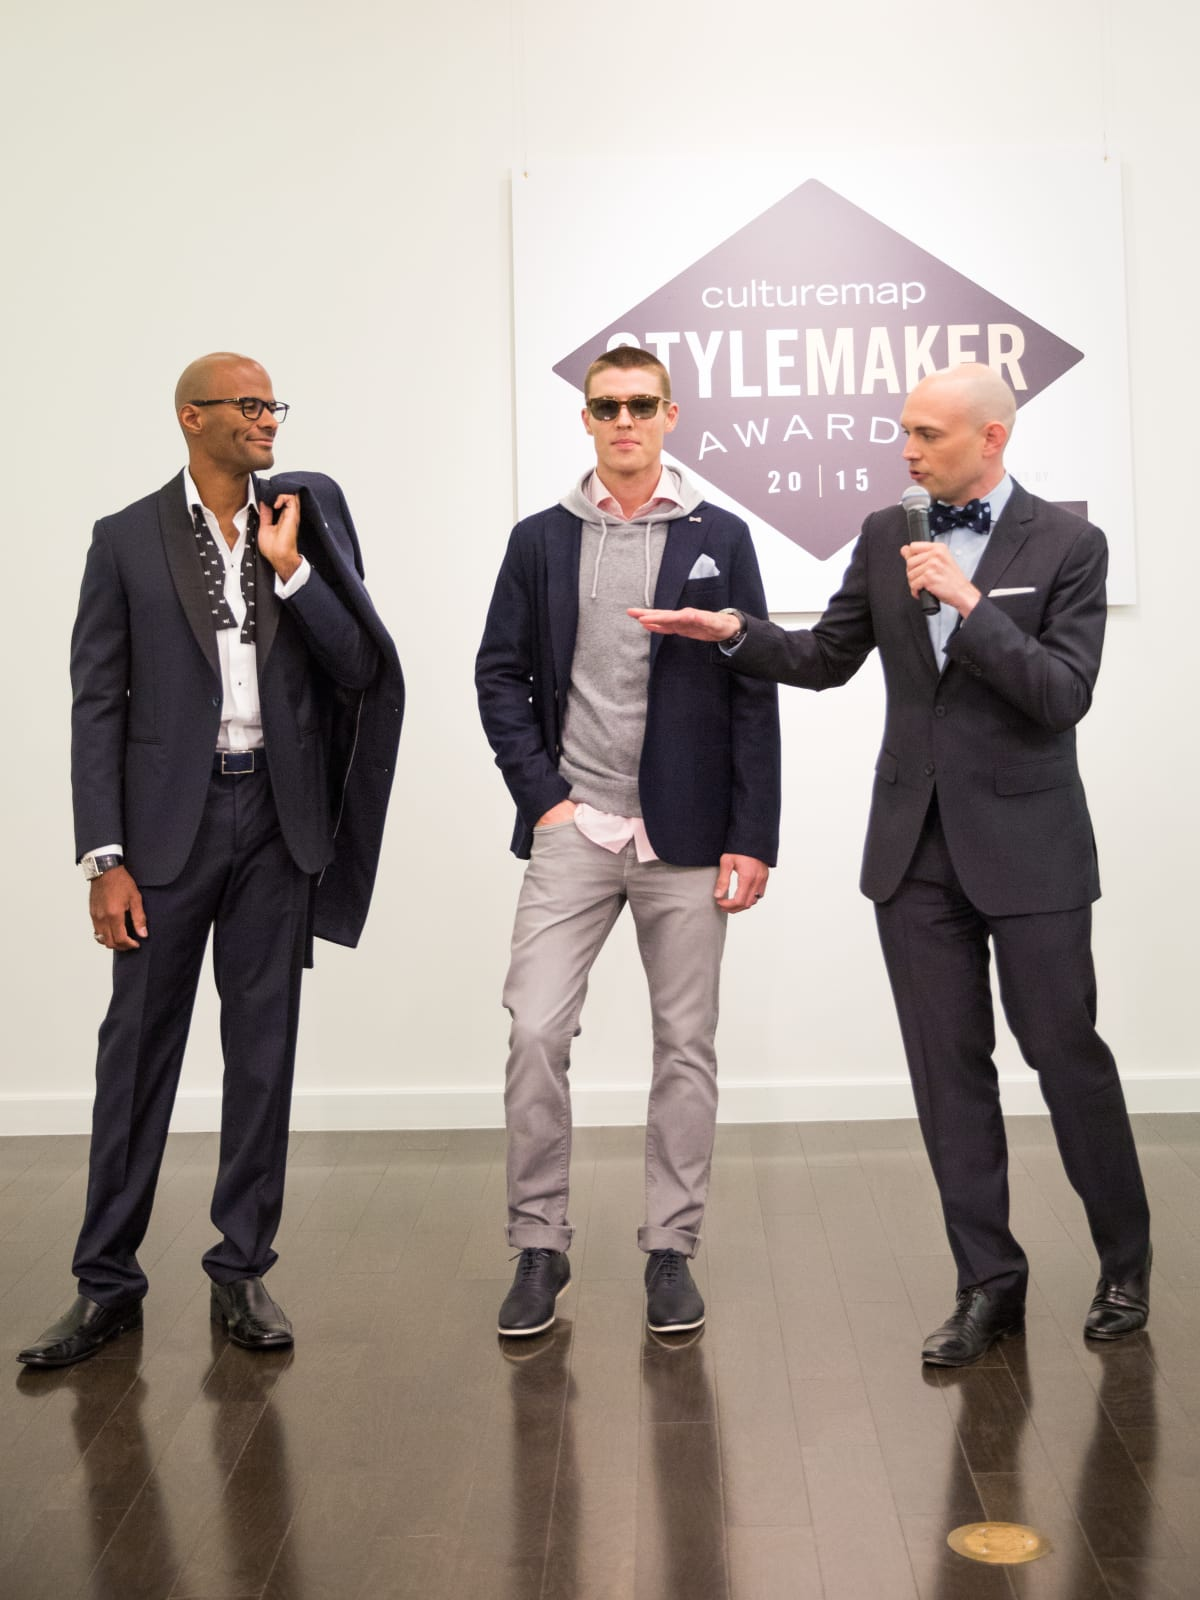 Julian Leaver at the Dallas Stylemaker Awards